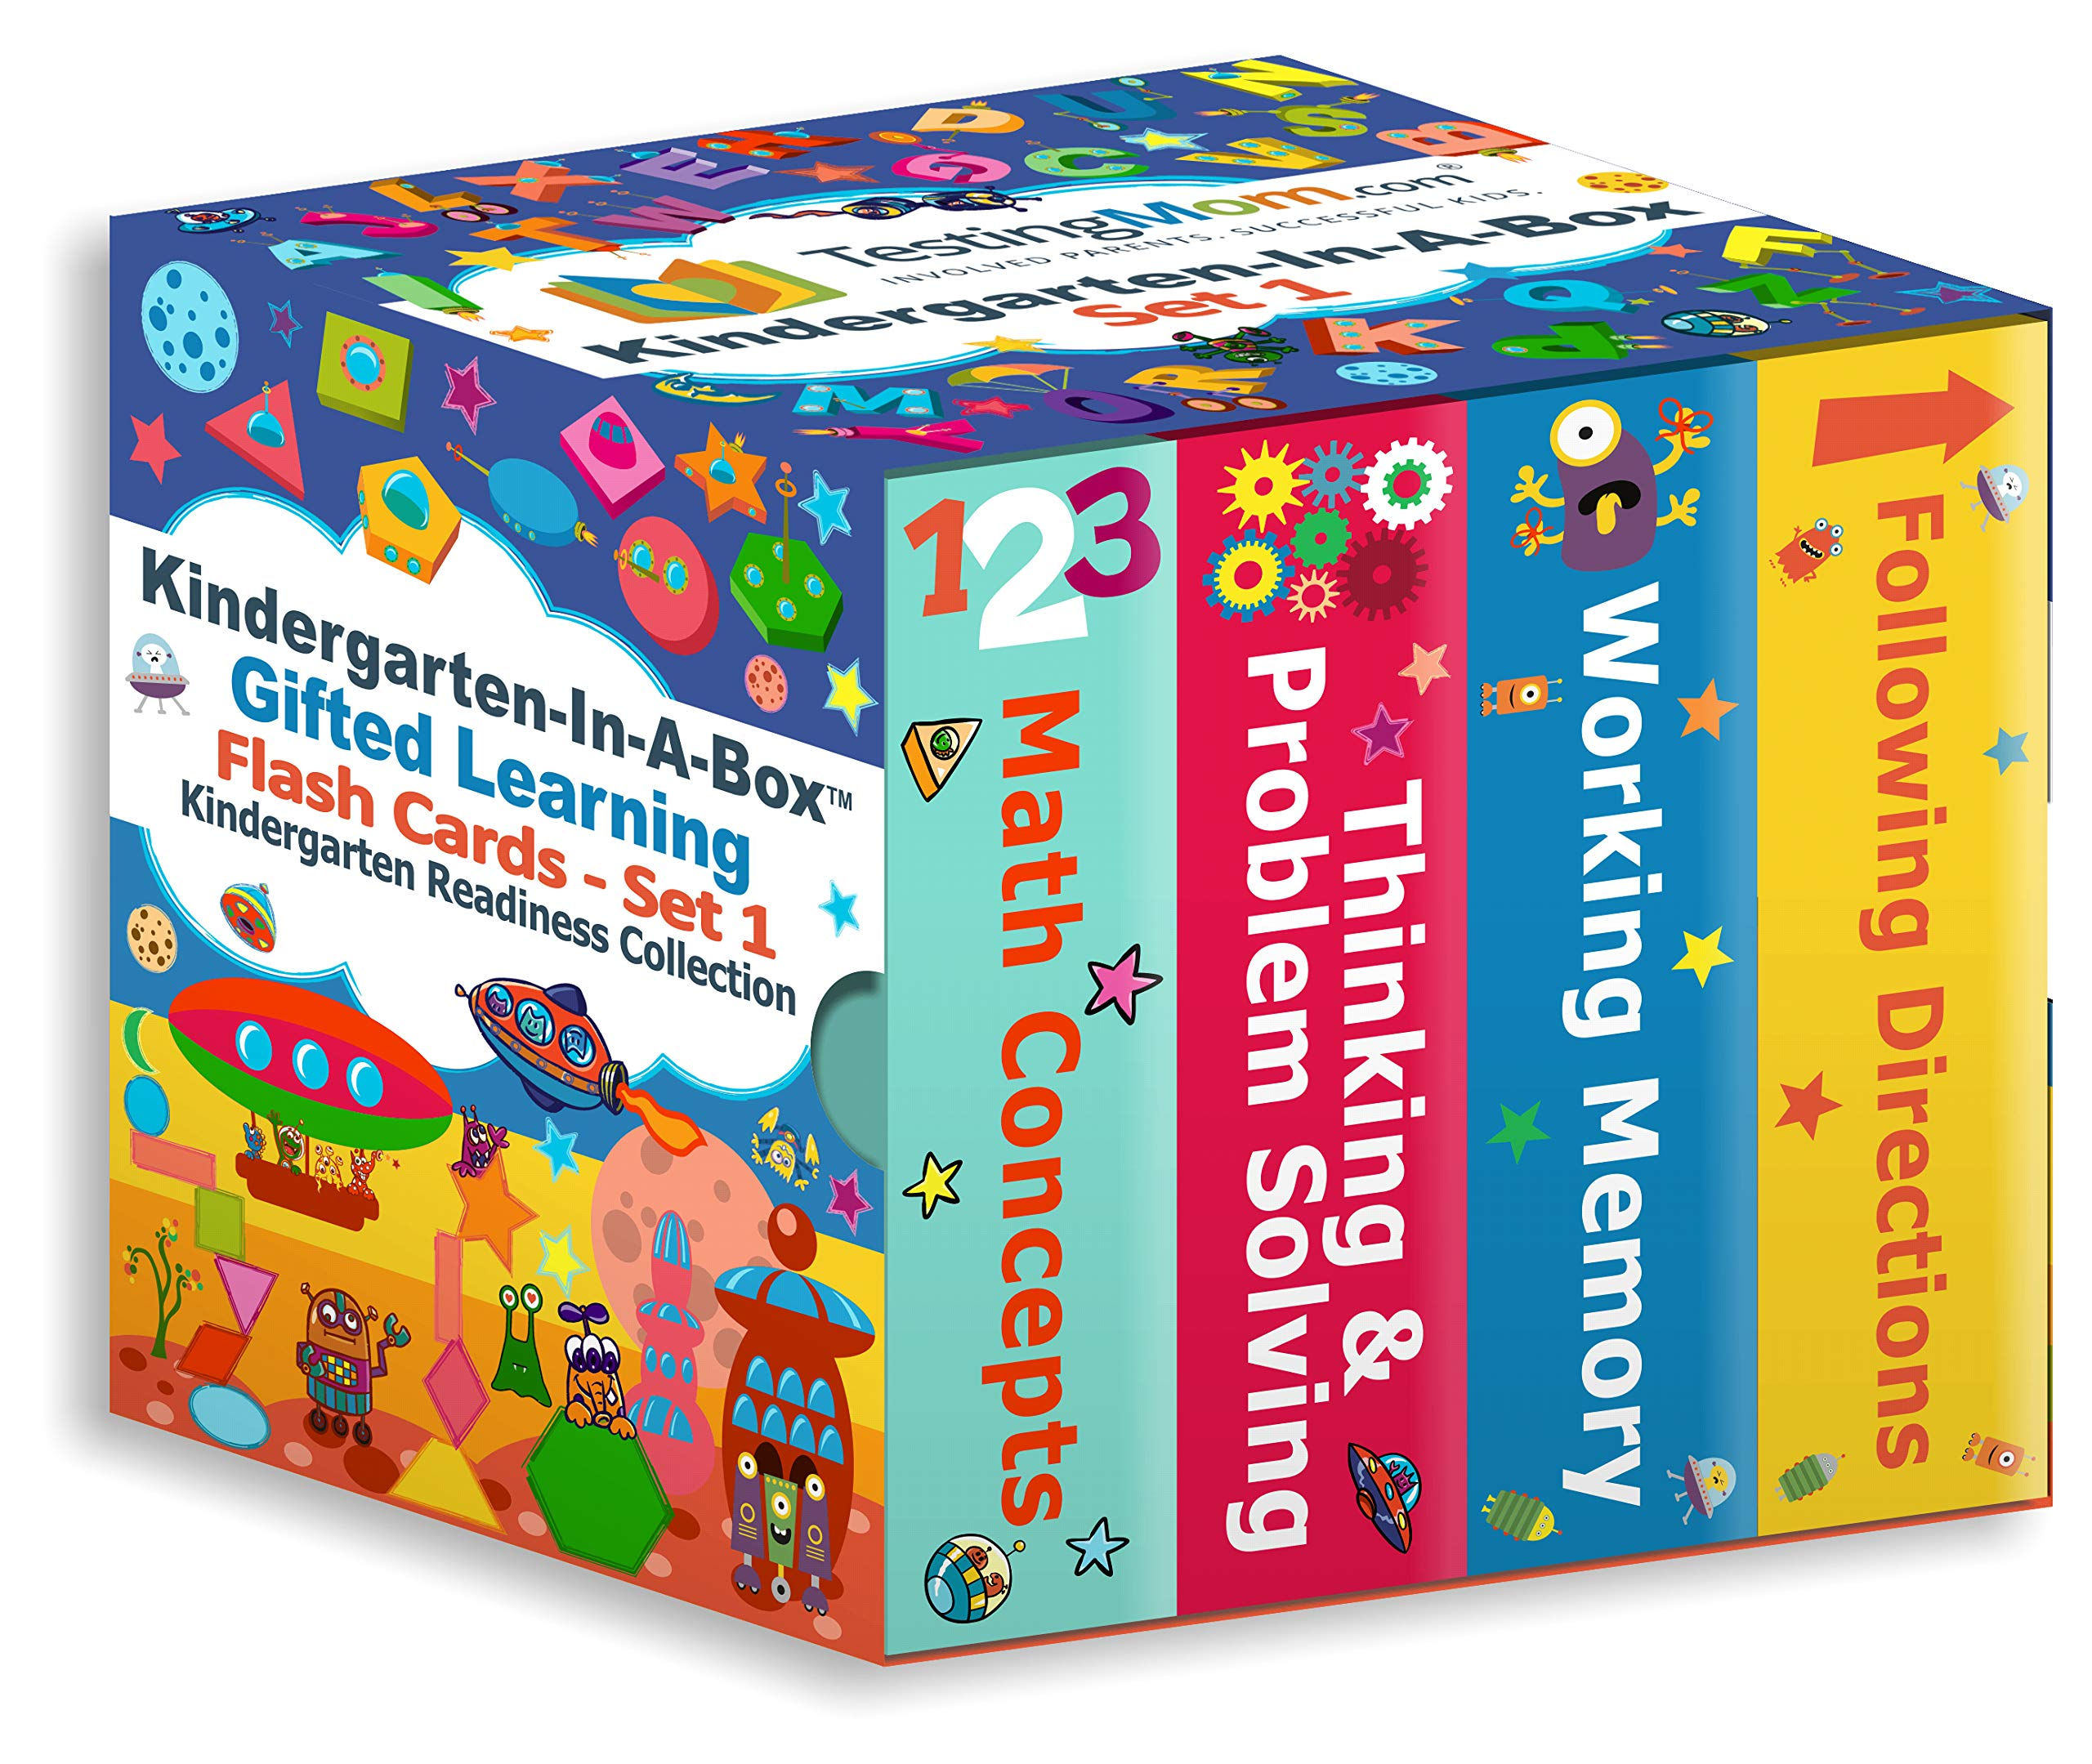 Gifted Learning Flash Cards Bundle - Kindergarten-in-A-Box - Math Concepts, Thinking & Problem Solving, Working Memory, Following Directions (Set 1) by TestingMom.com (Image #1)